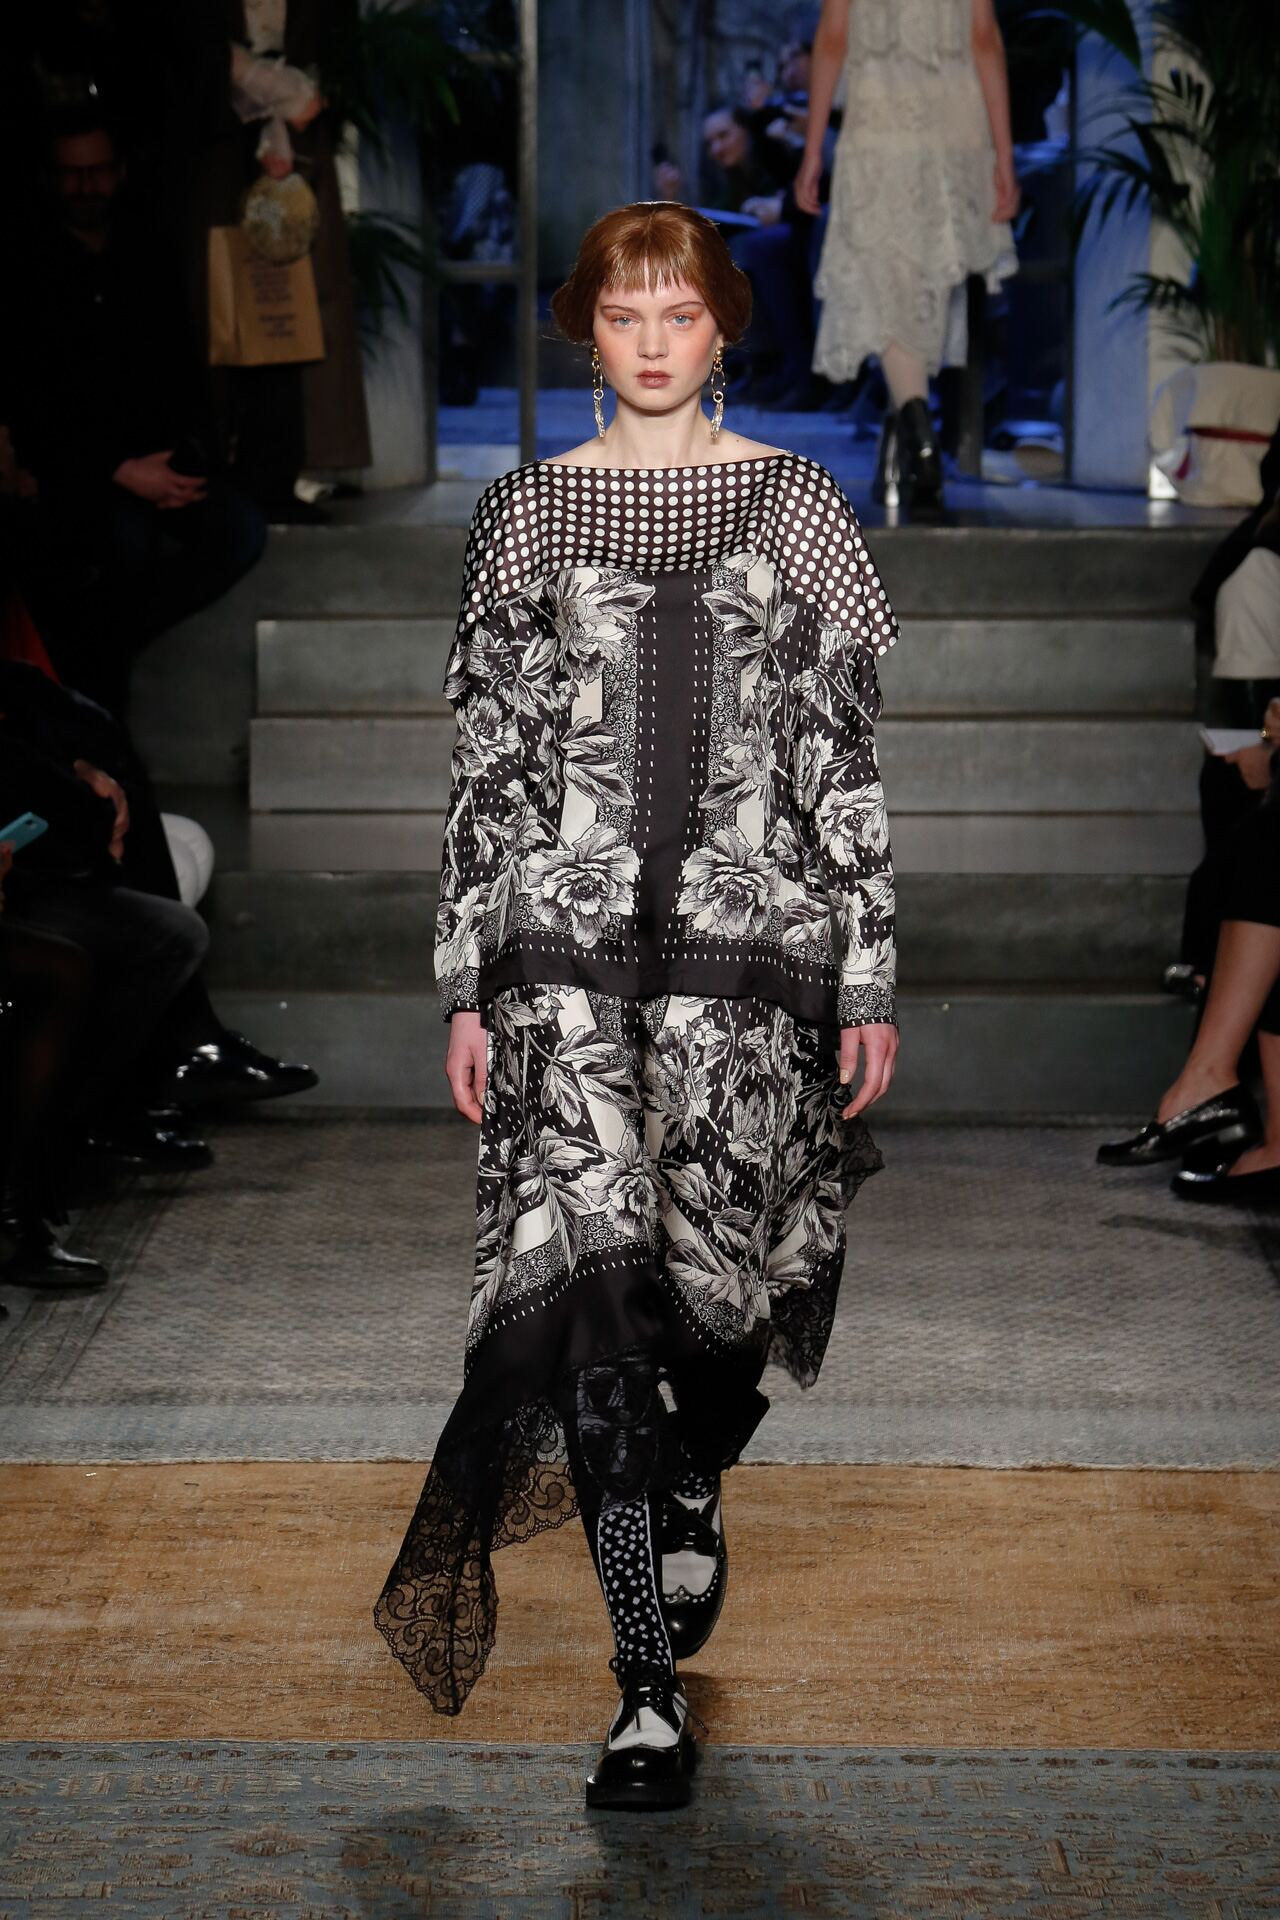 2019 Antonio Marras Winter Runway Show